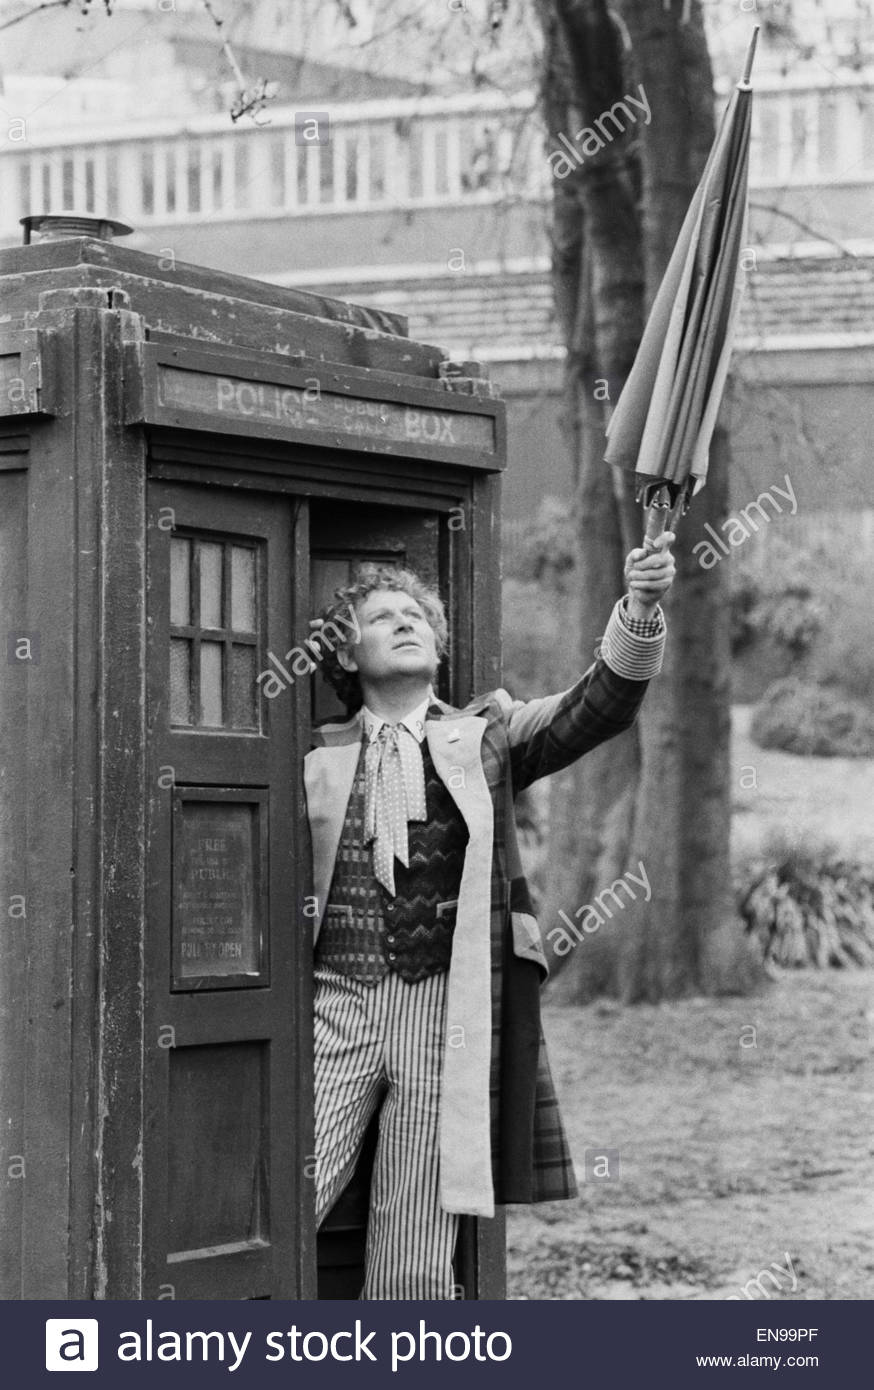 actor-colin-baker-recently-named-as-the-sixth-doctor-who-in-the-bbc-EN99PF.jpg